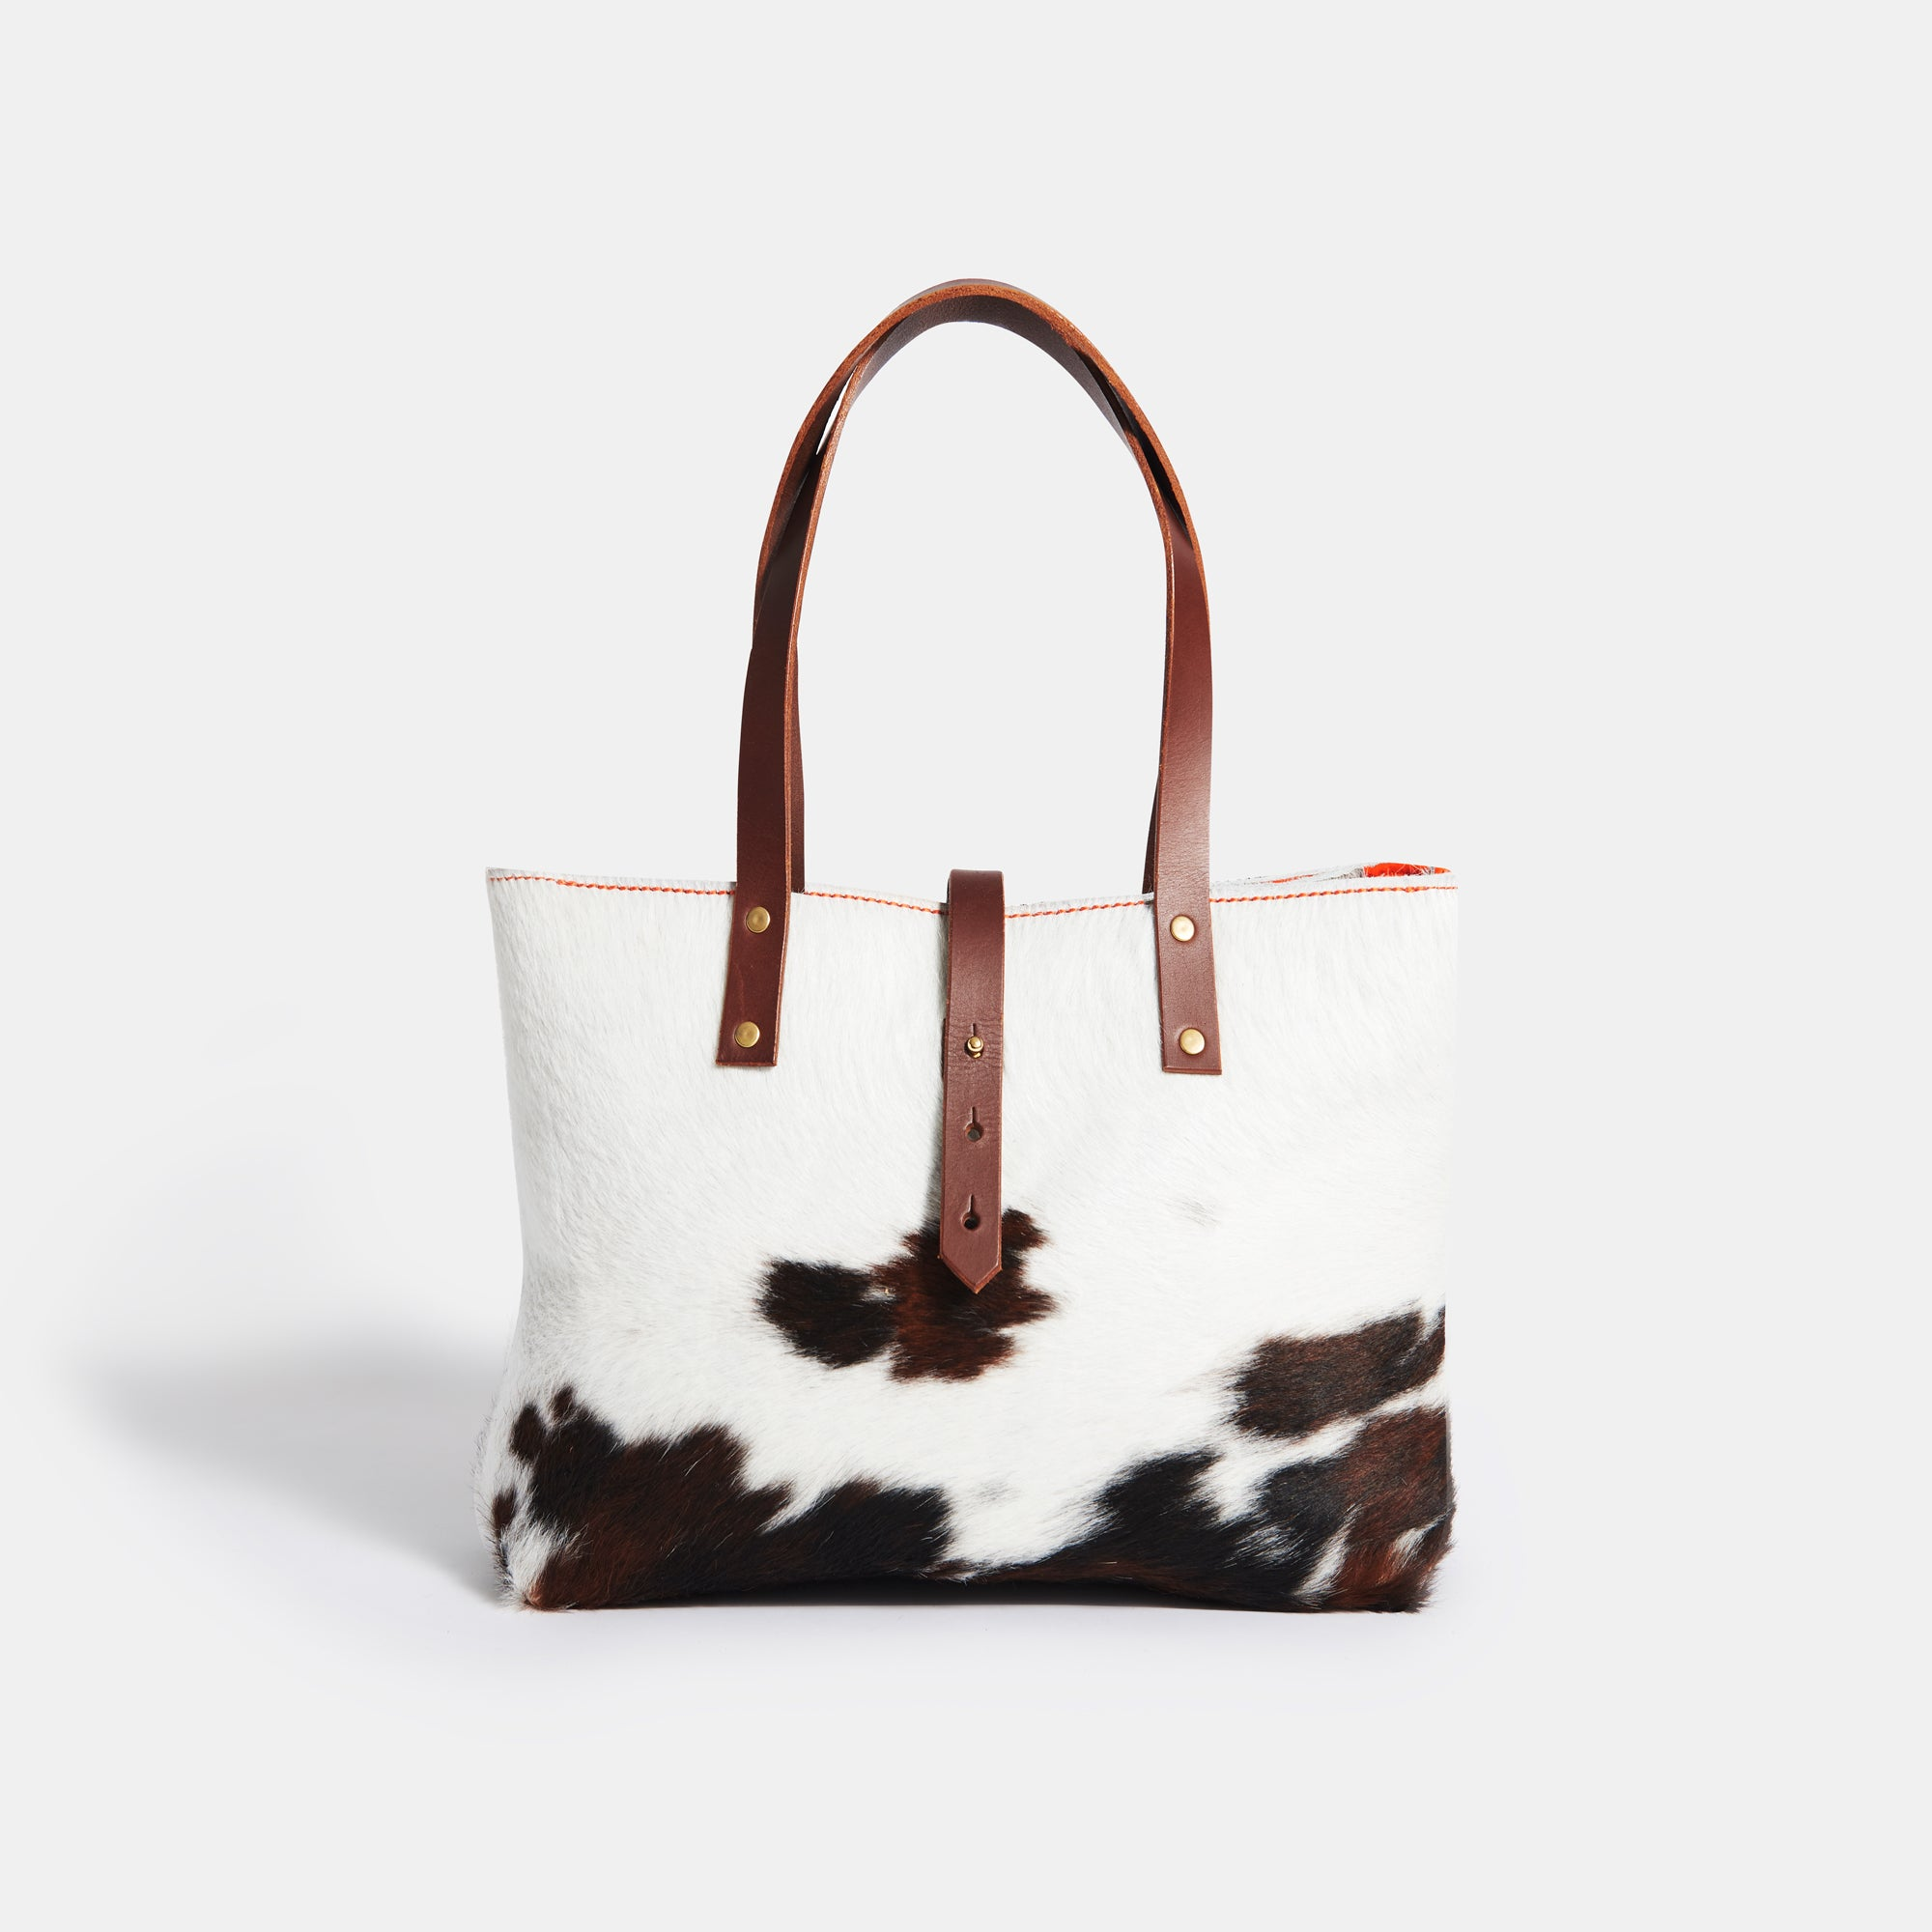 Hair-on Tote Bag+Zip - RYAN London